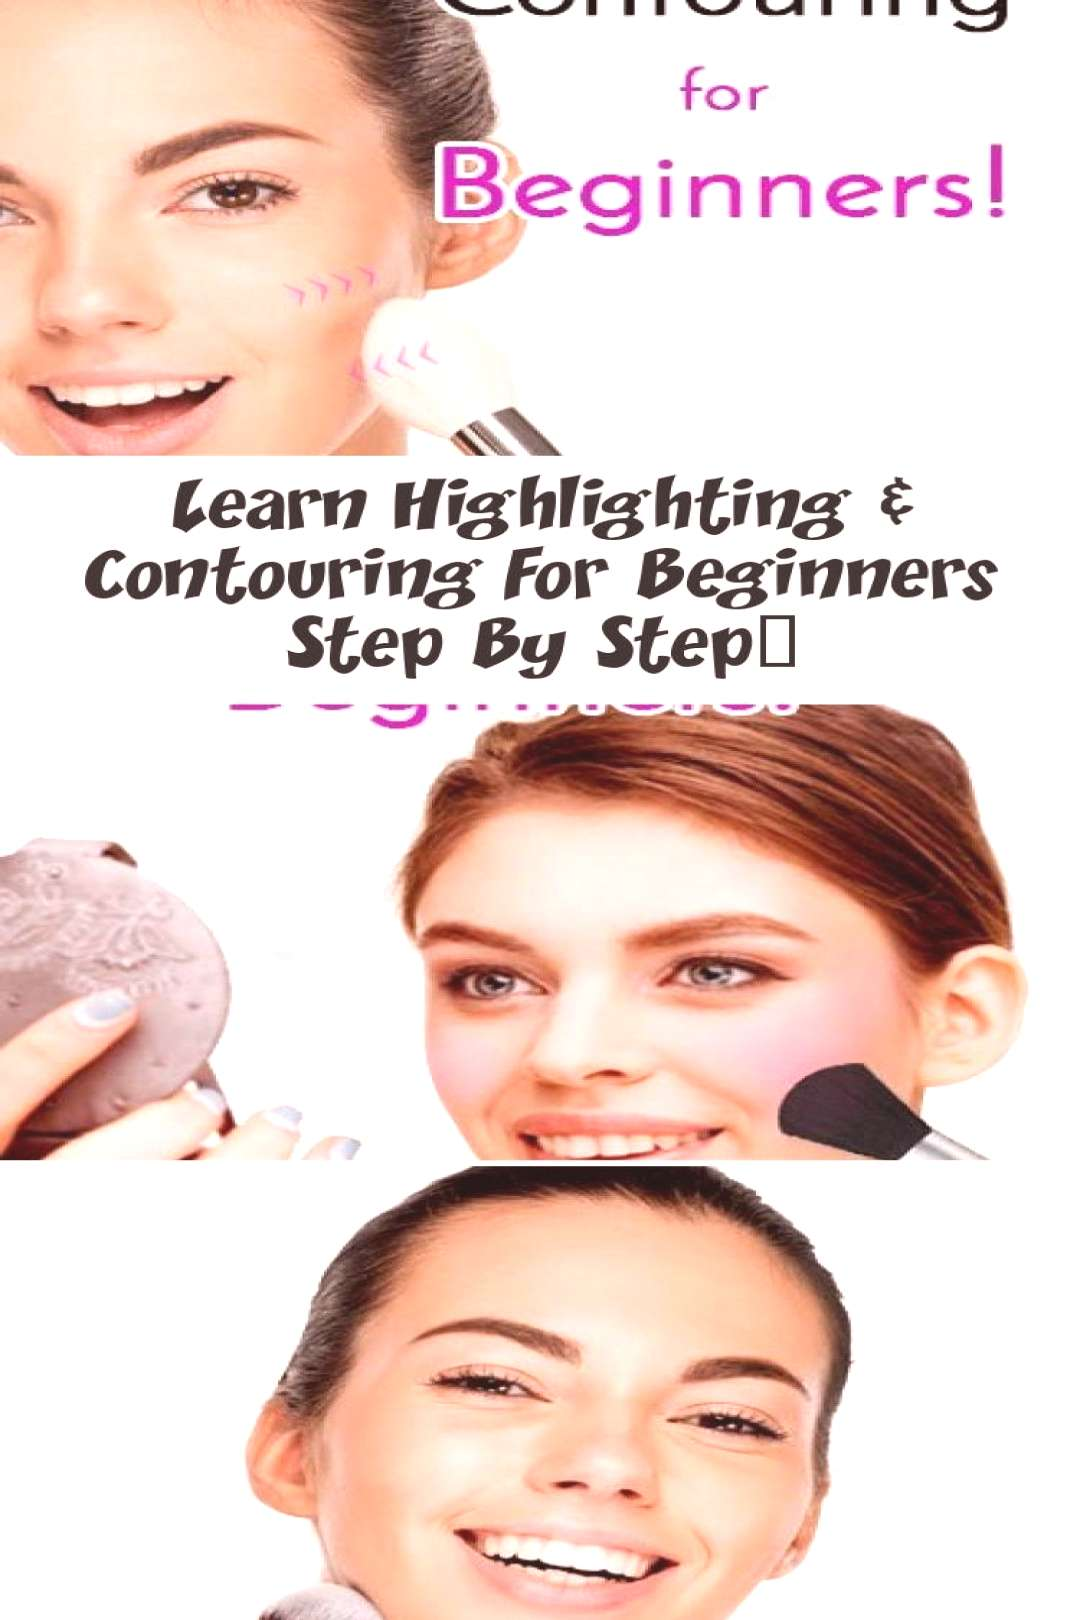 Learn step-by-step highlighting and contouring for beginners ...#beginners